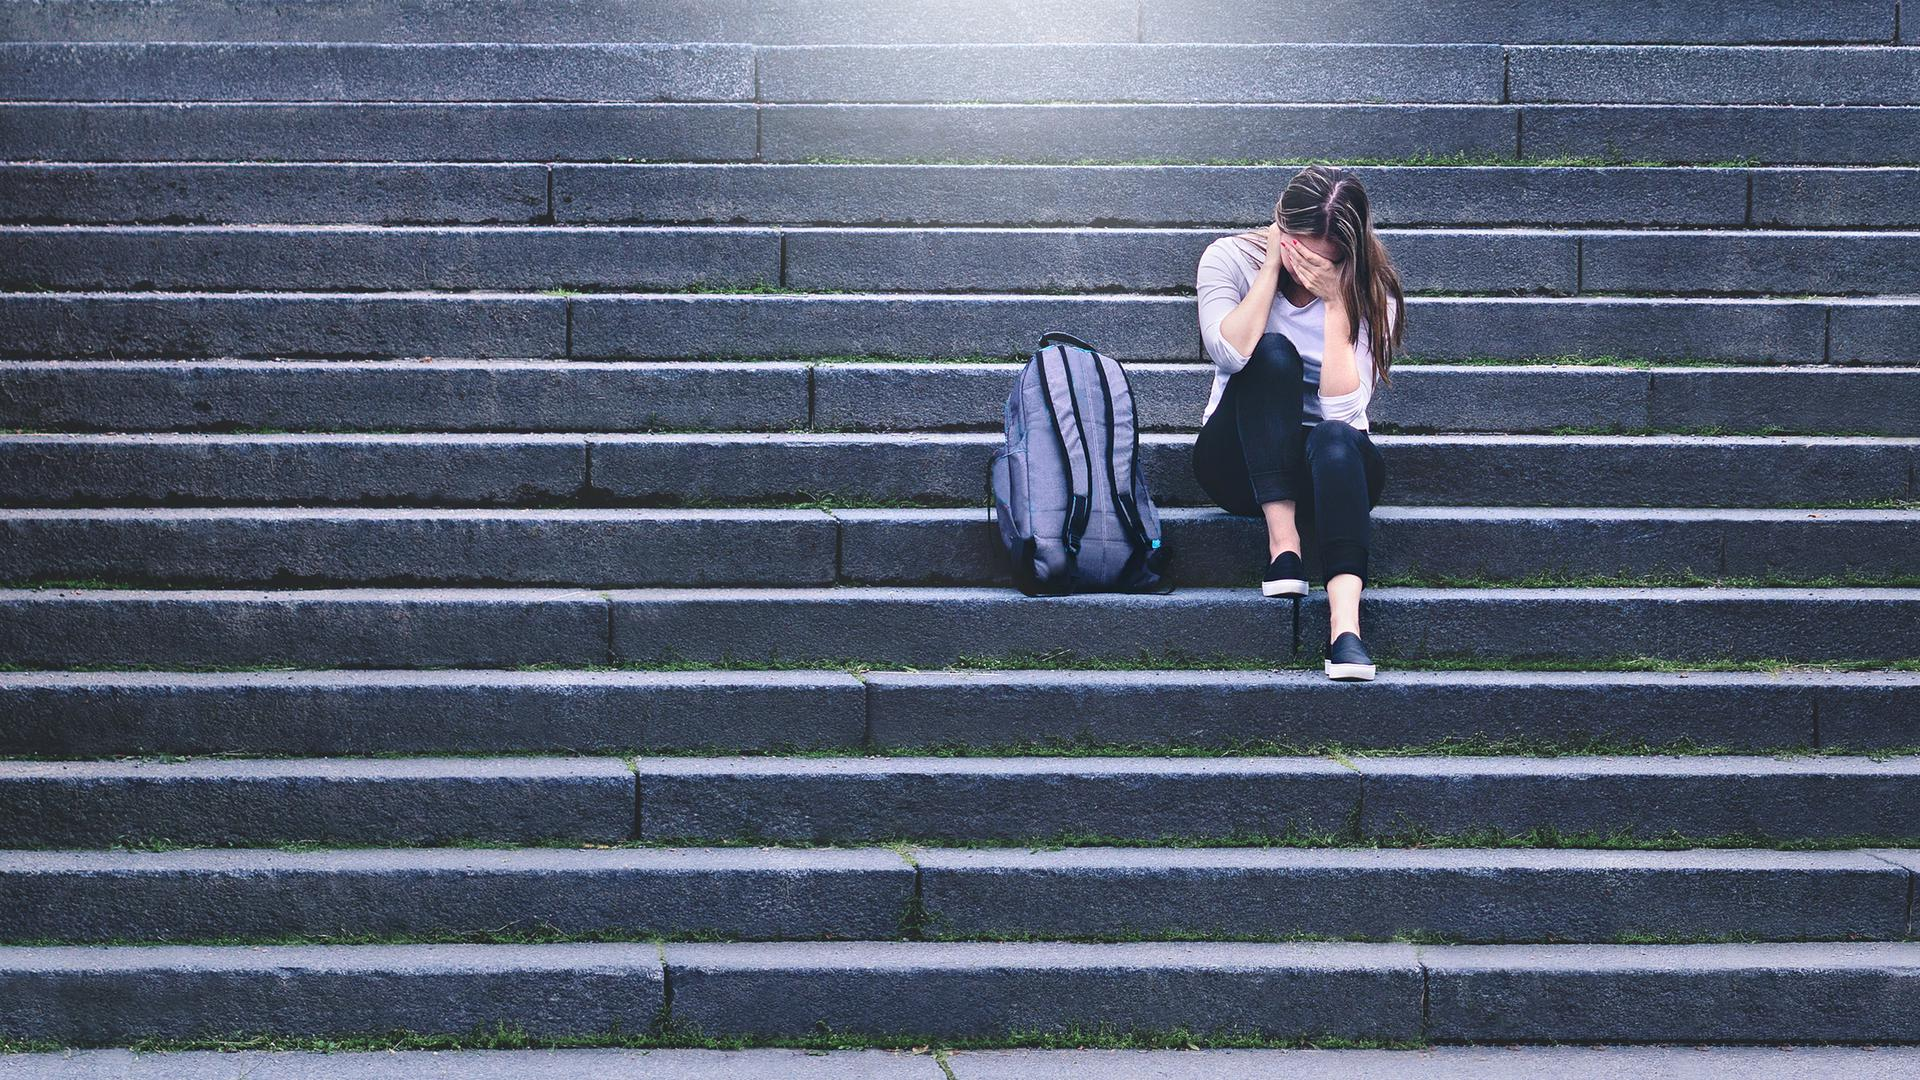 Bullying, discrimination or stress concept. Sad teenager crying in school yard. Upset young female student having anxiety. Upset victim of abuse or harassment sitting on stairs outdoors with backbag.